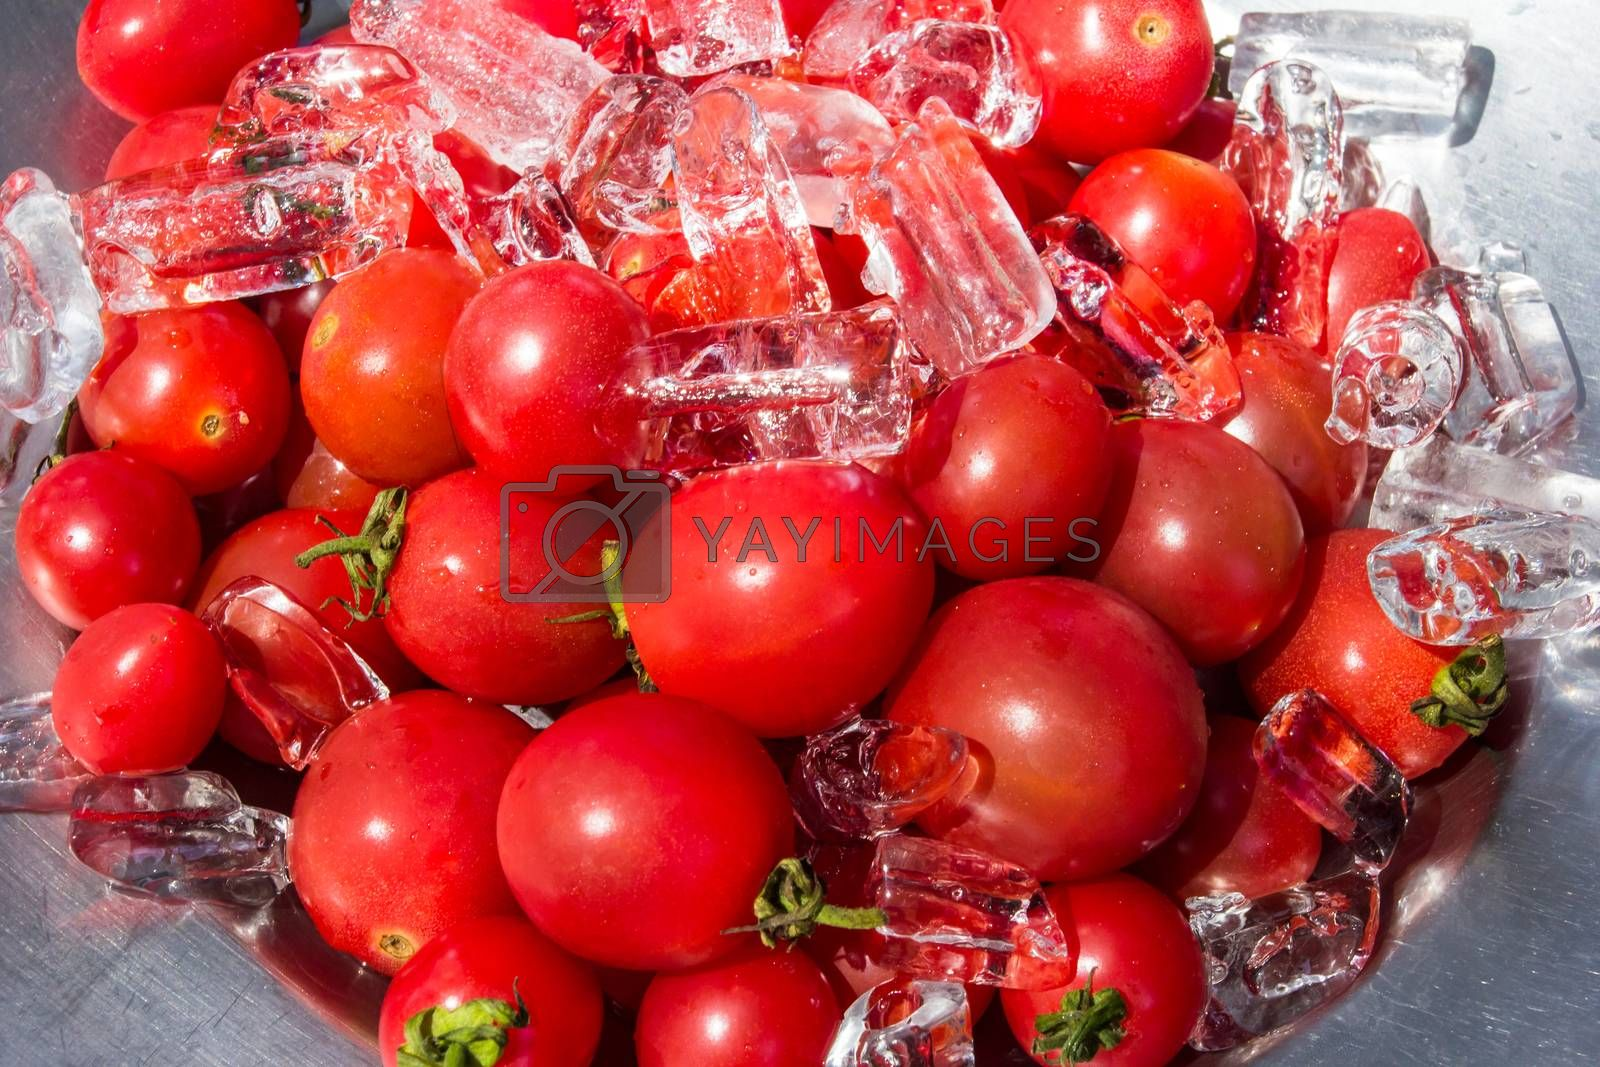 Royalty free image of Queen tomatoes with ice  by kannapon